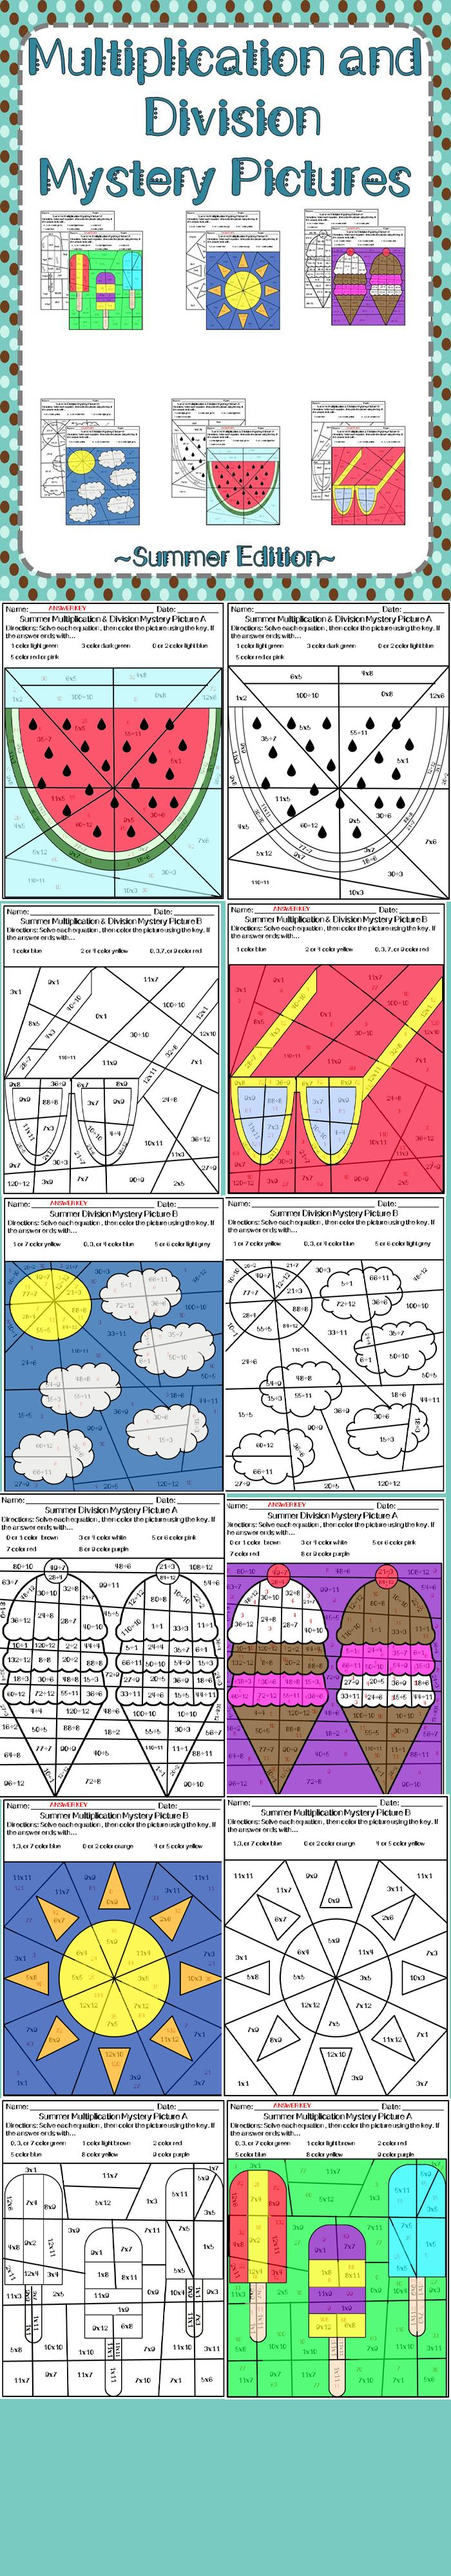 best 25 multiplication and division ideas only on pinterest